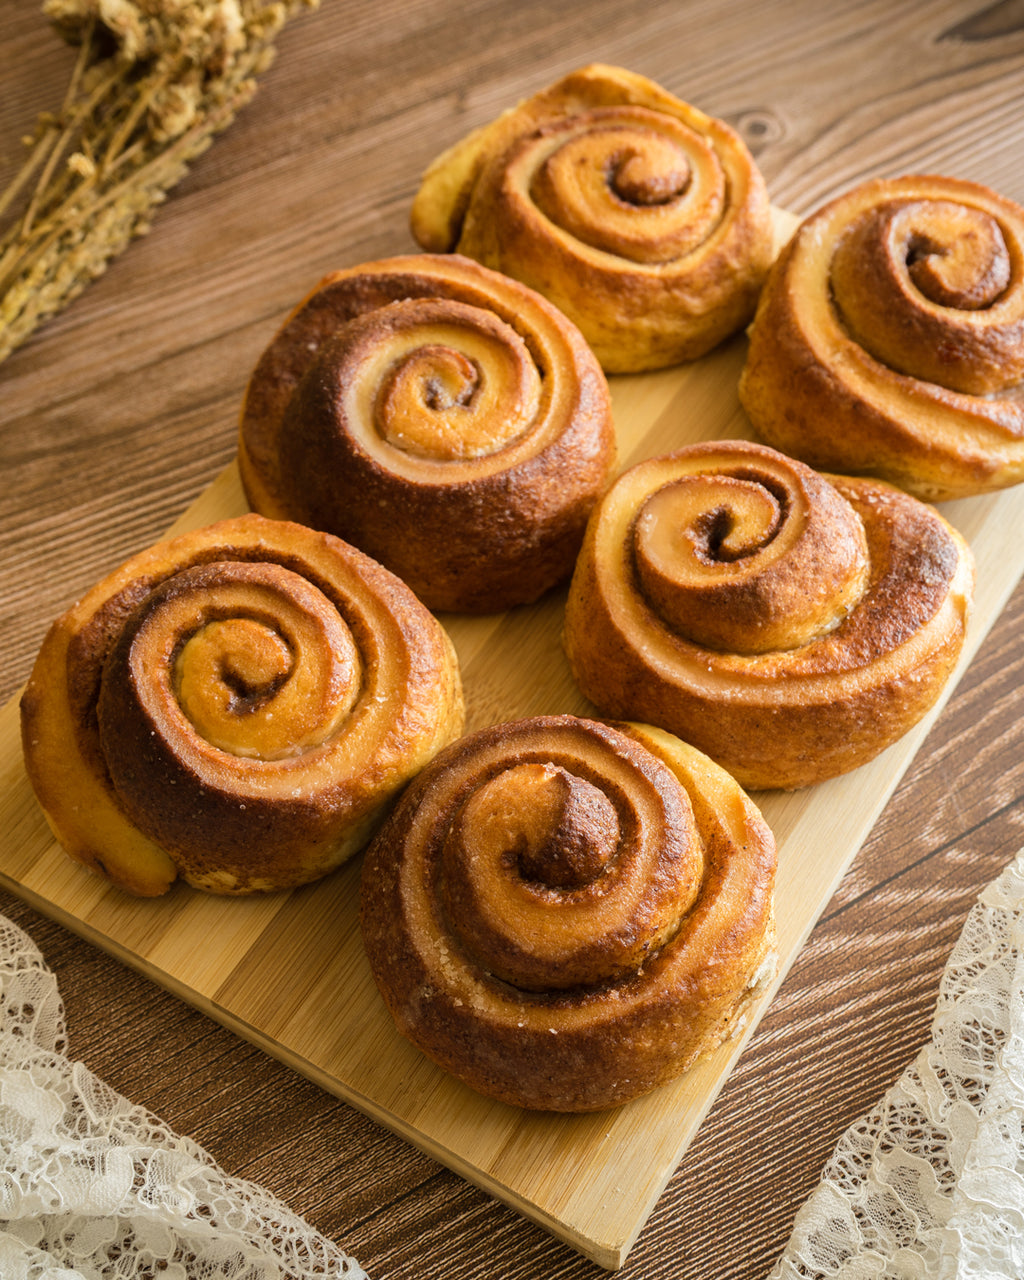 NEW Sugar Glazed Cinnamon Roll (Pack of 6 or 12)